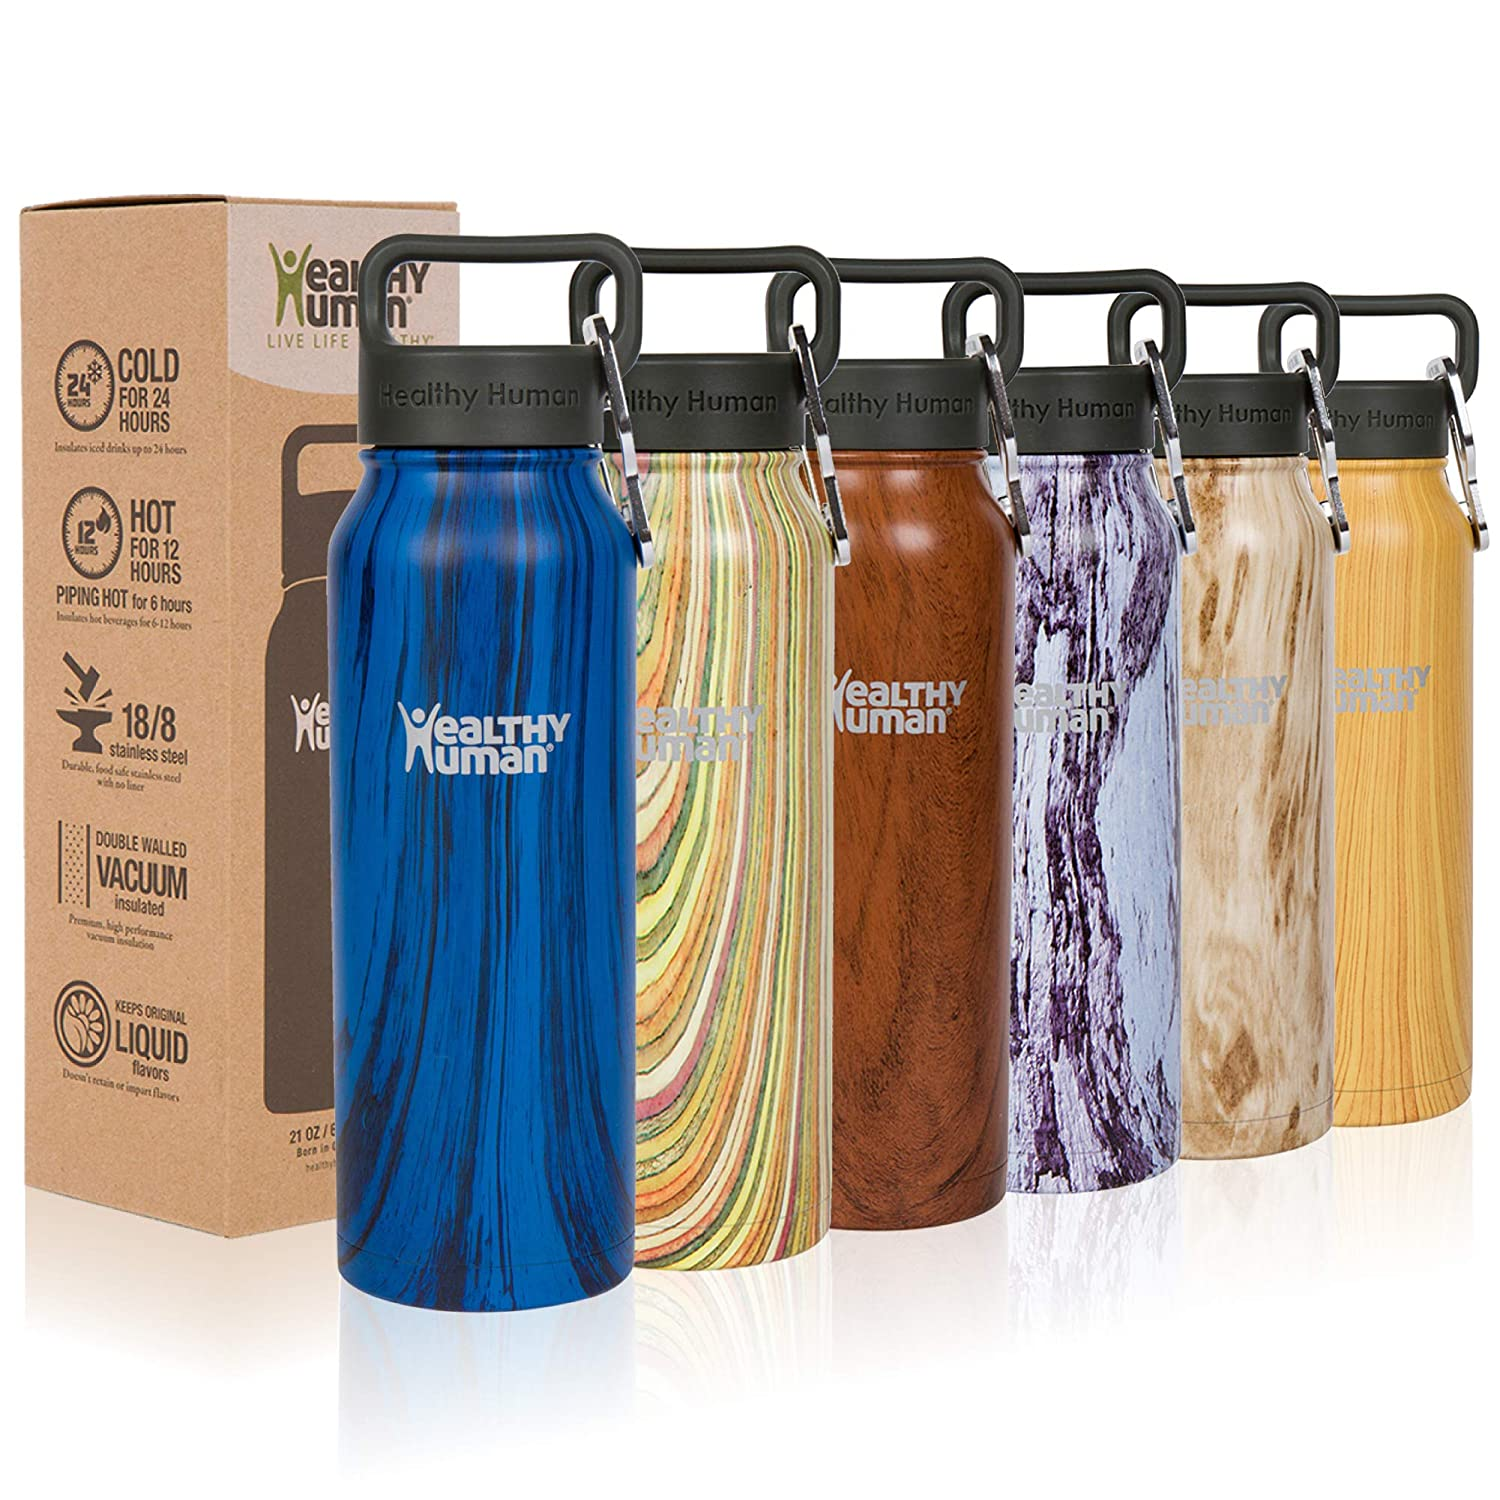 Midnight Oak 21 oz Healthy Human Stainless Steel Water Bottle Stein  Thermo Insulated Reusable Flask  Cold 24 Hrs Hot 12 Hrs  Double Wall  w Hydro Guide.  4 Sizes & 7 colors